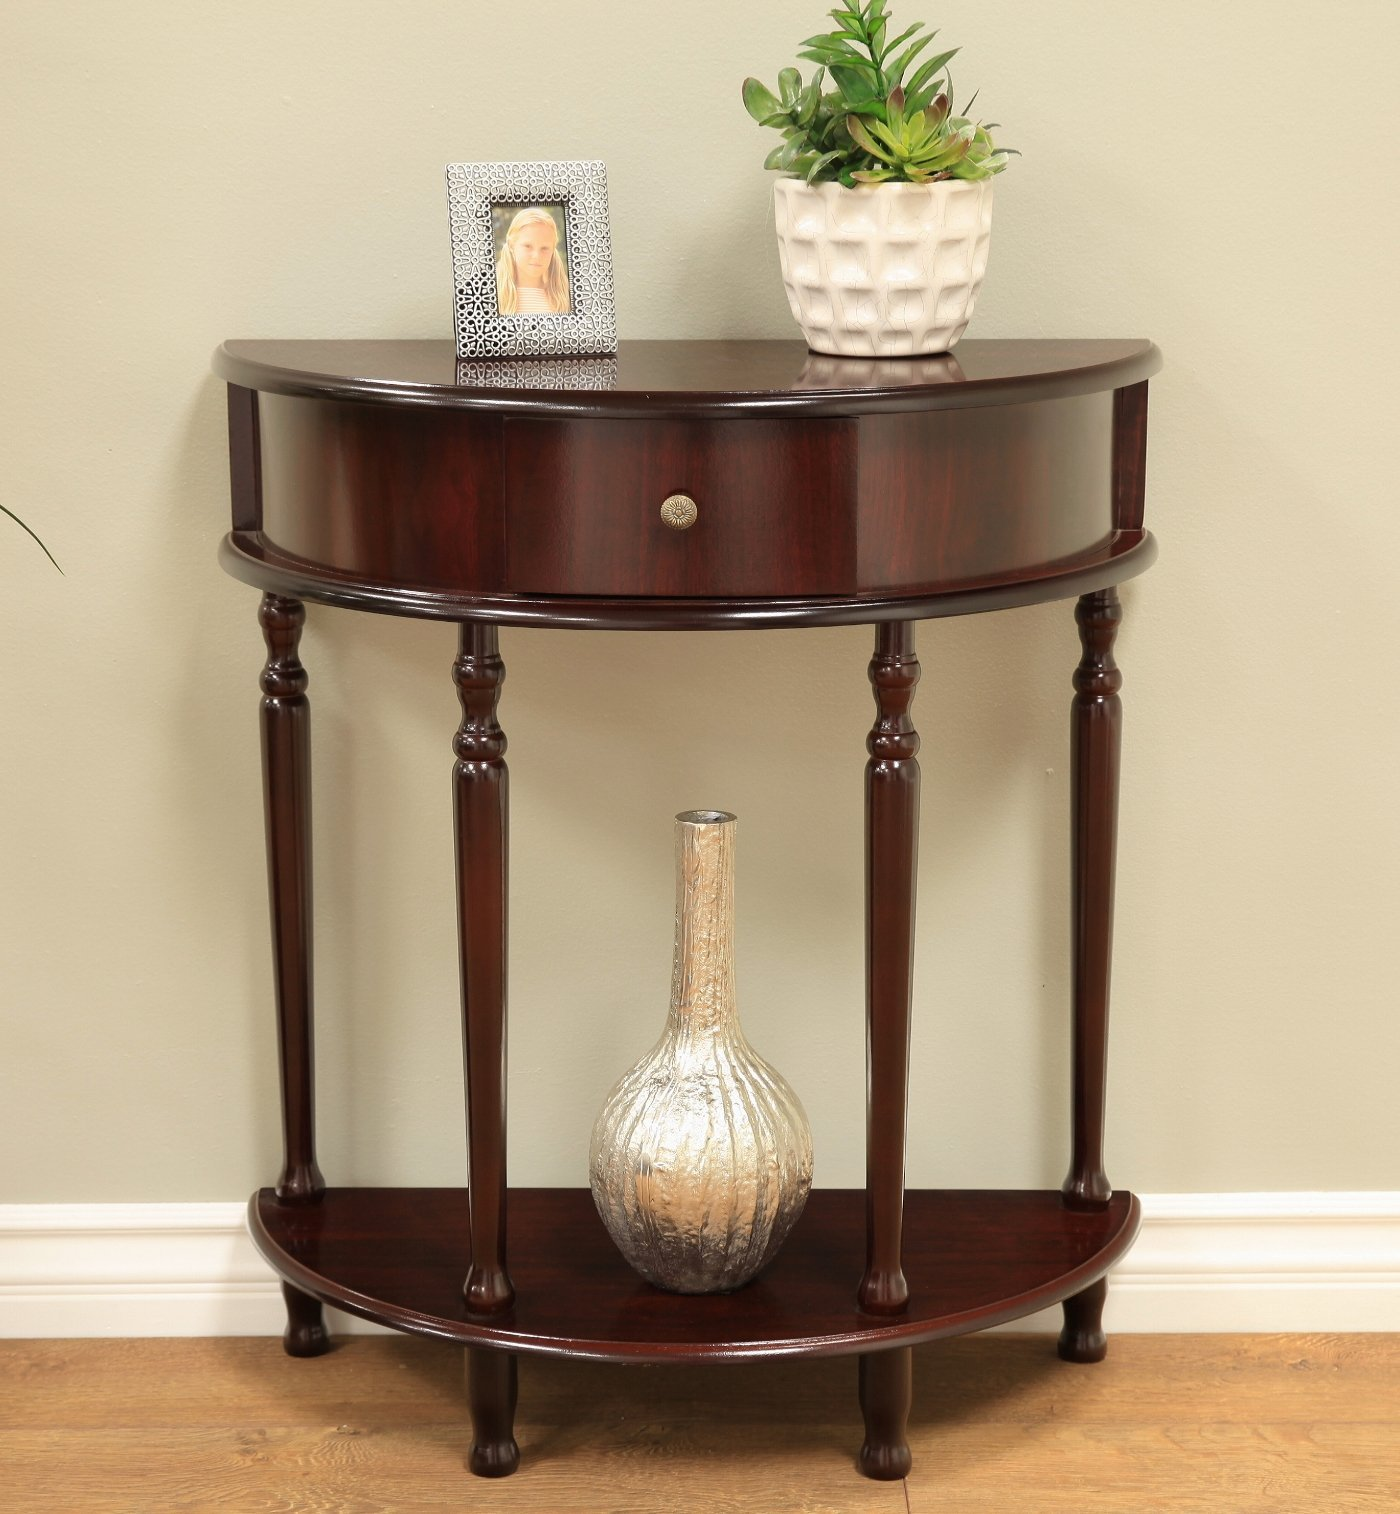 Frenchi Home Furnishing End Table/Side Table, Espresso Finish by Frenchi Home Furnishing (Image #2)